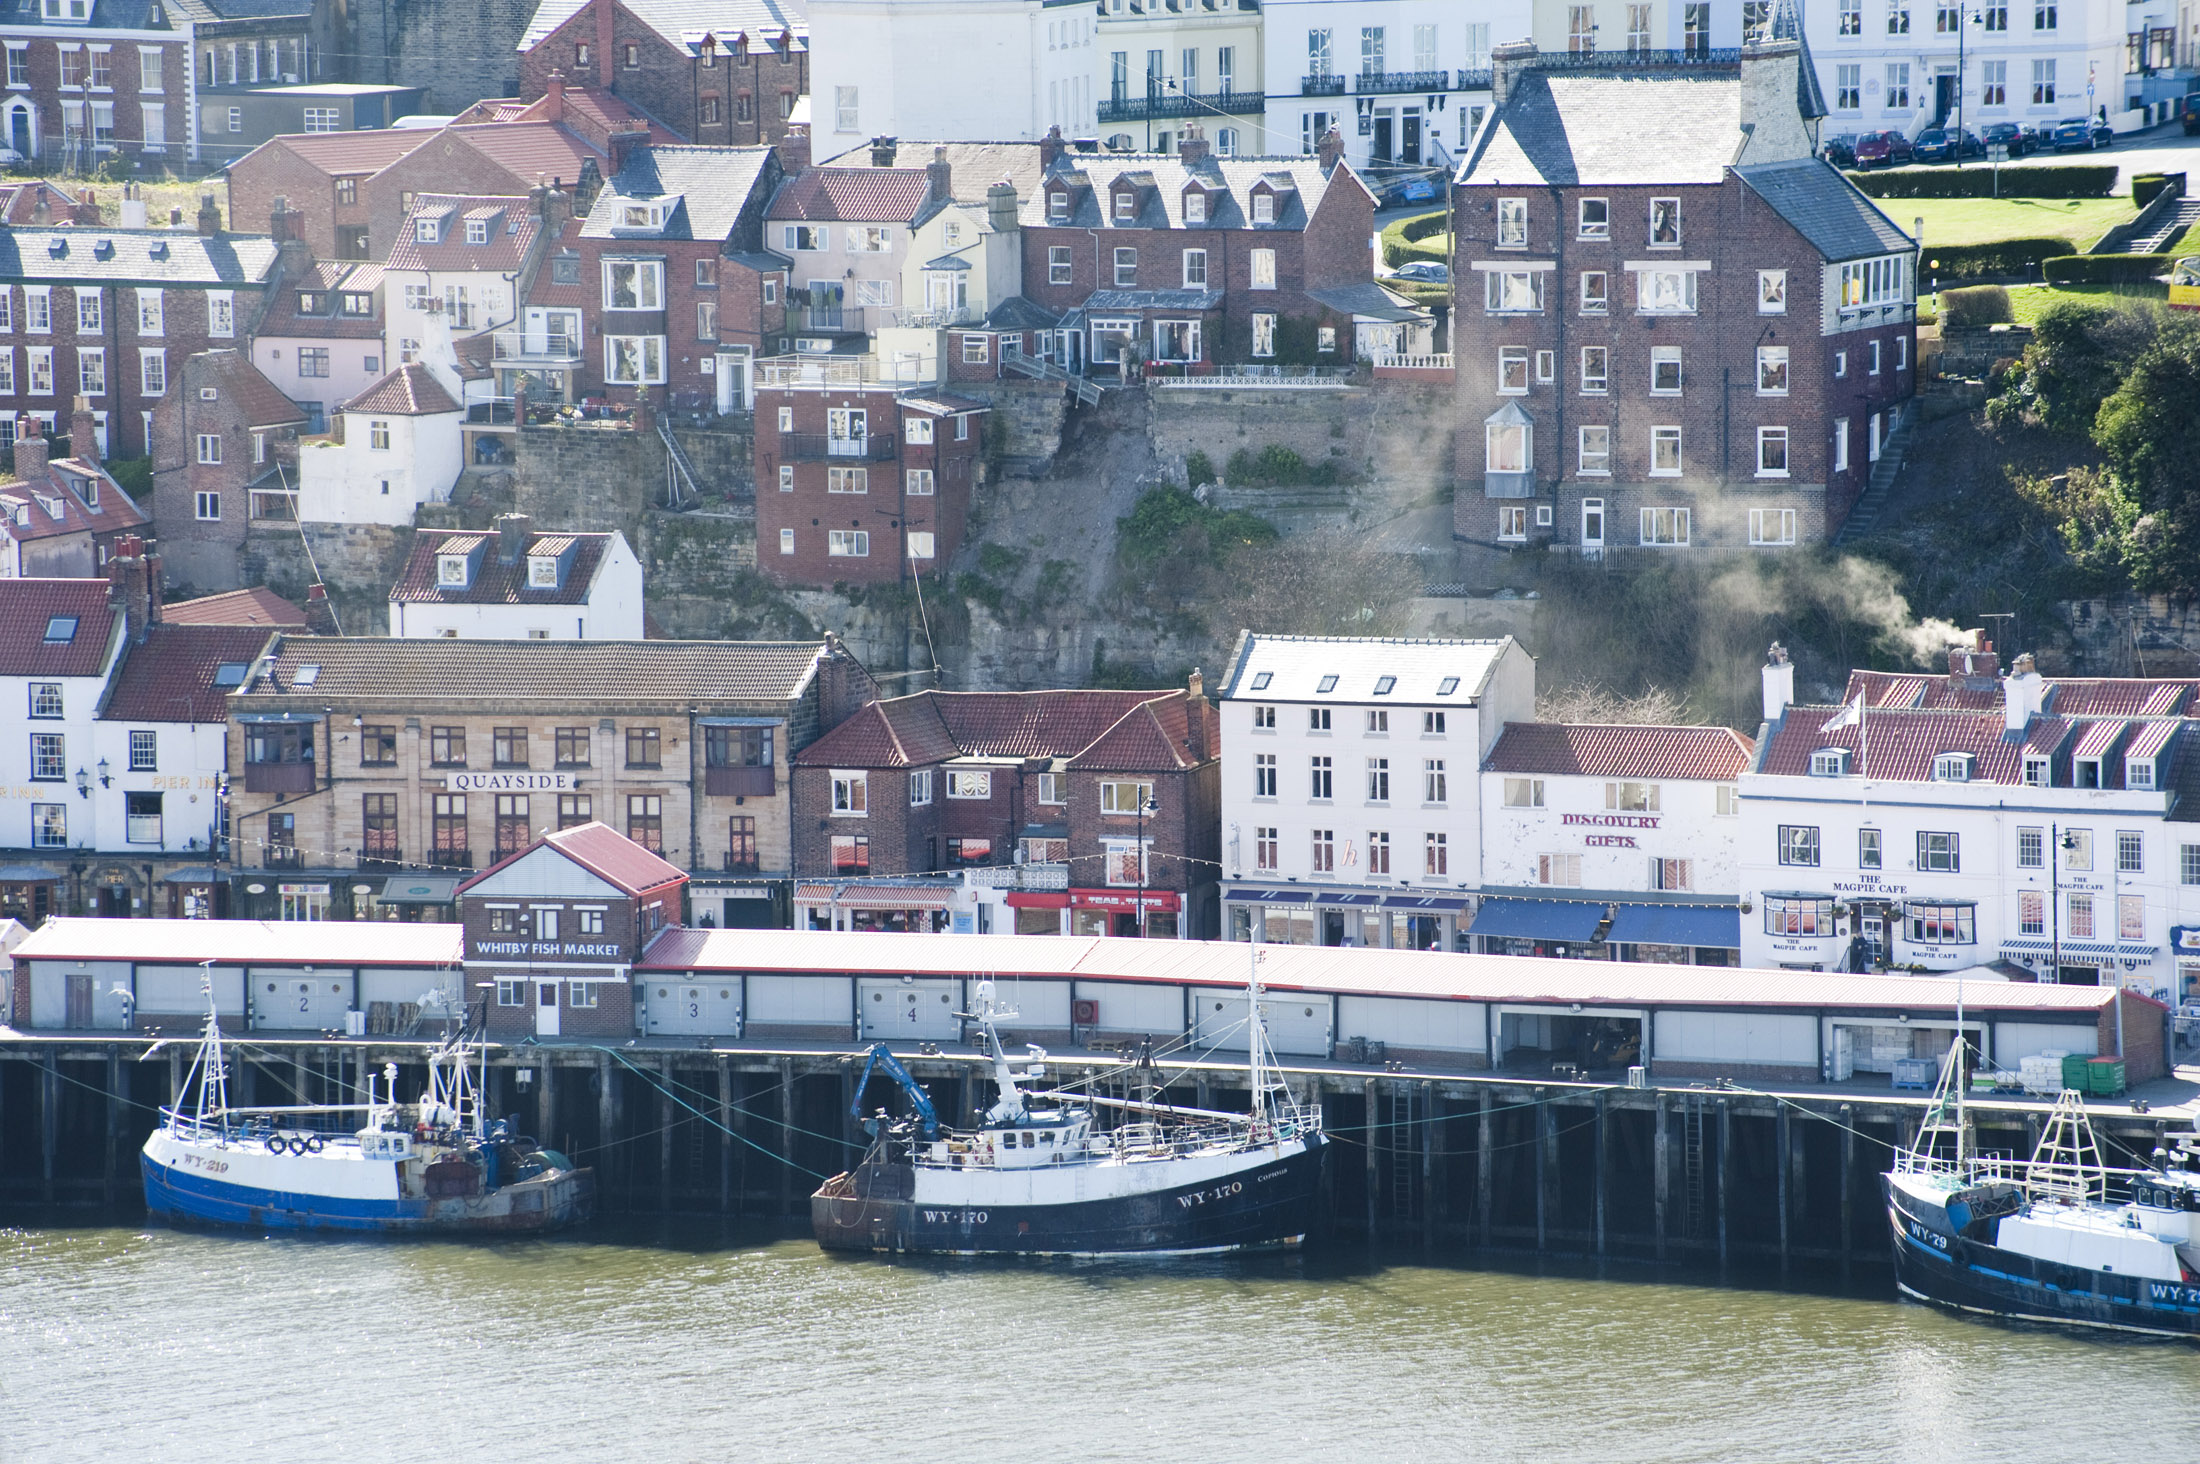 fishing boats docked along the quayside fish market at whitby